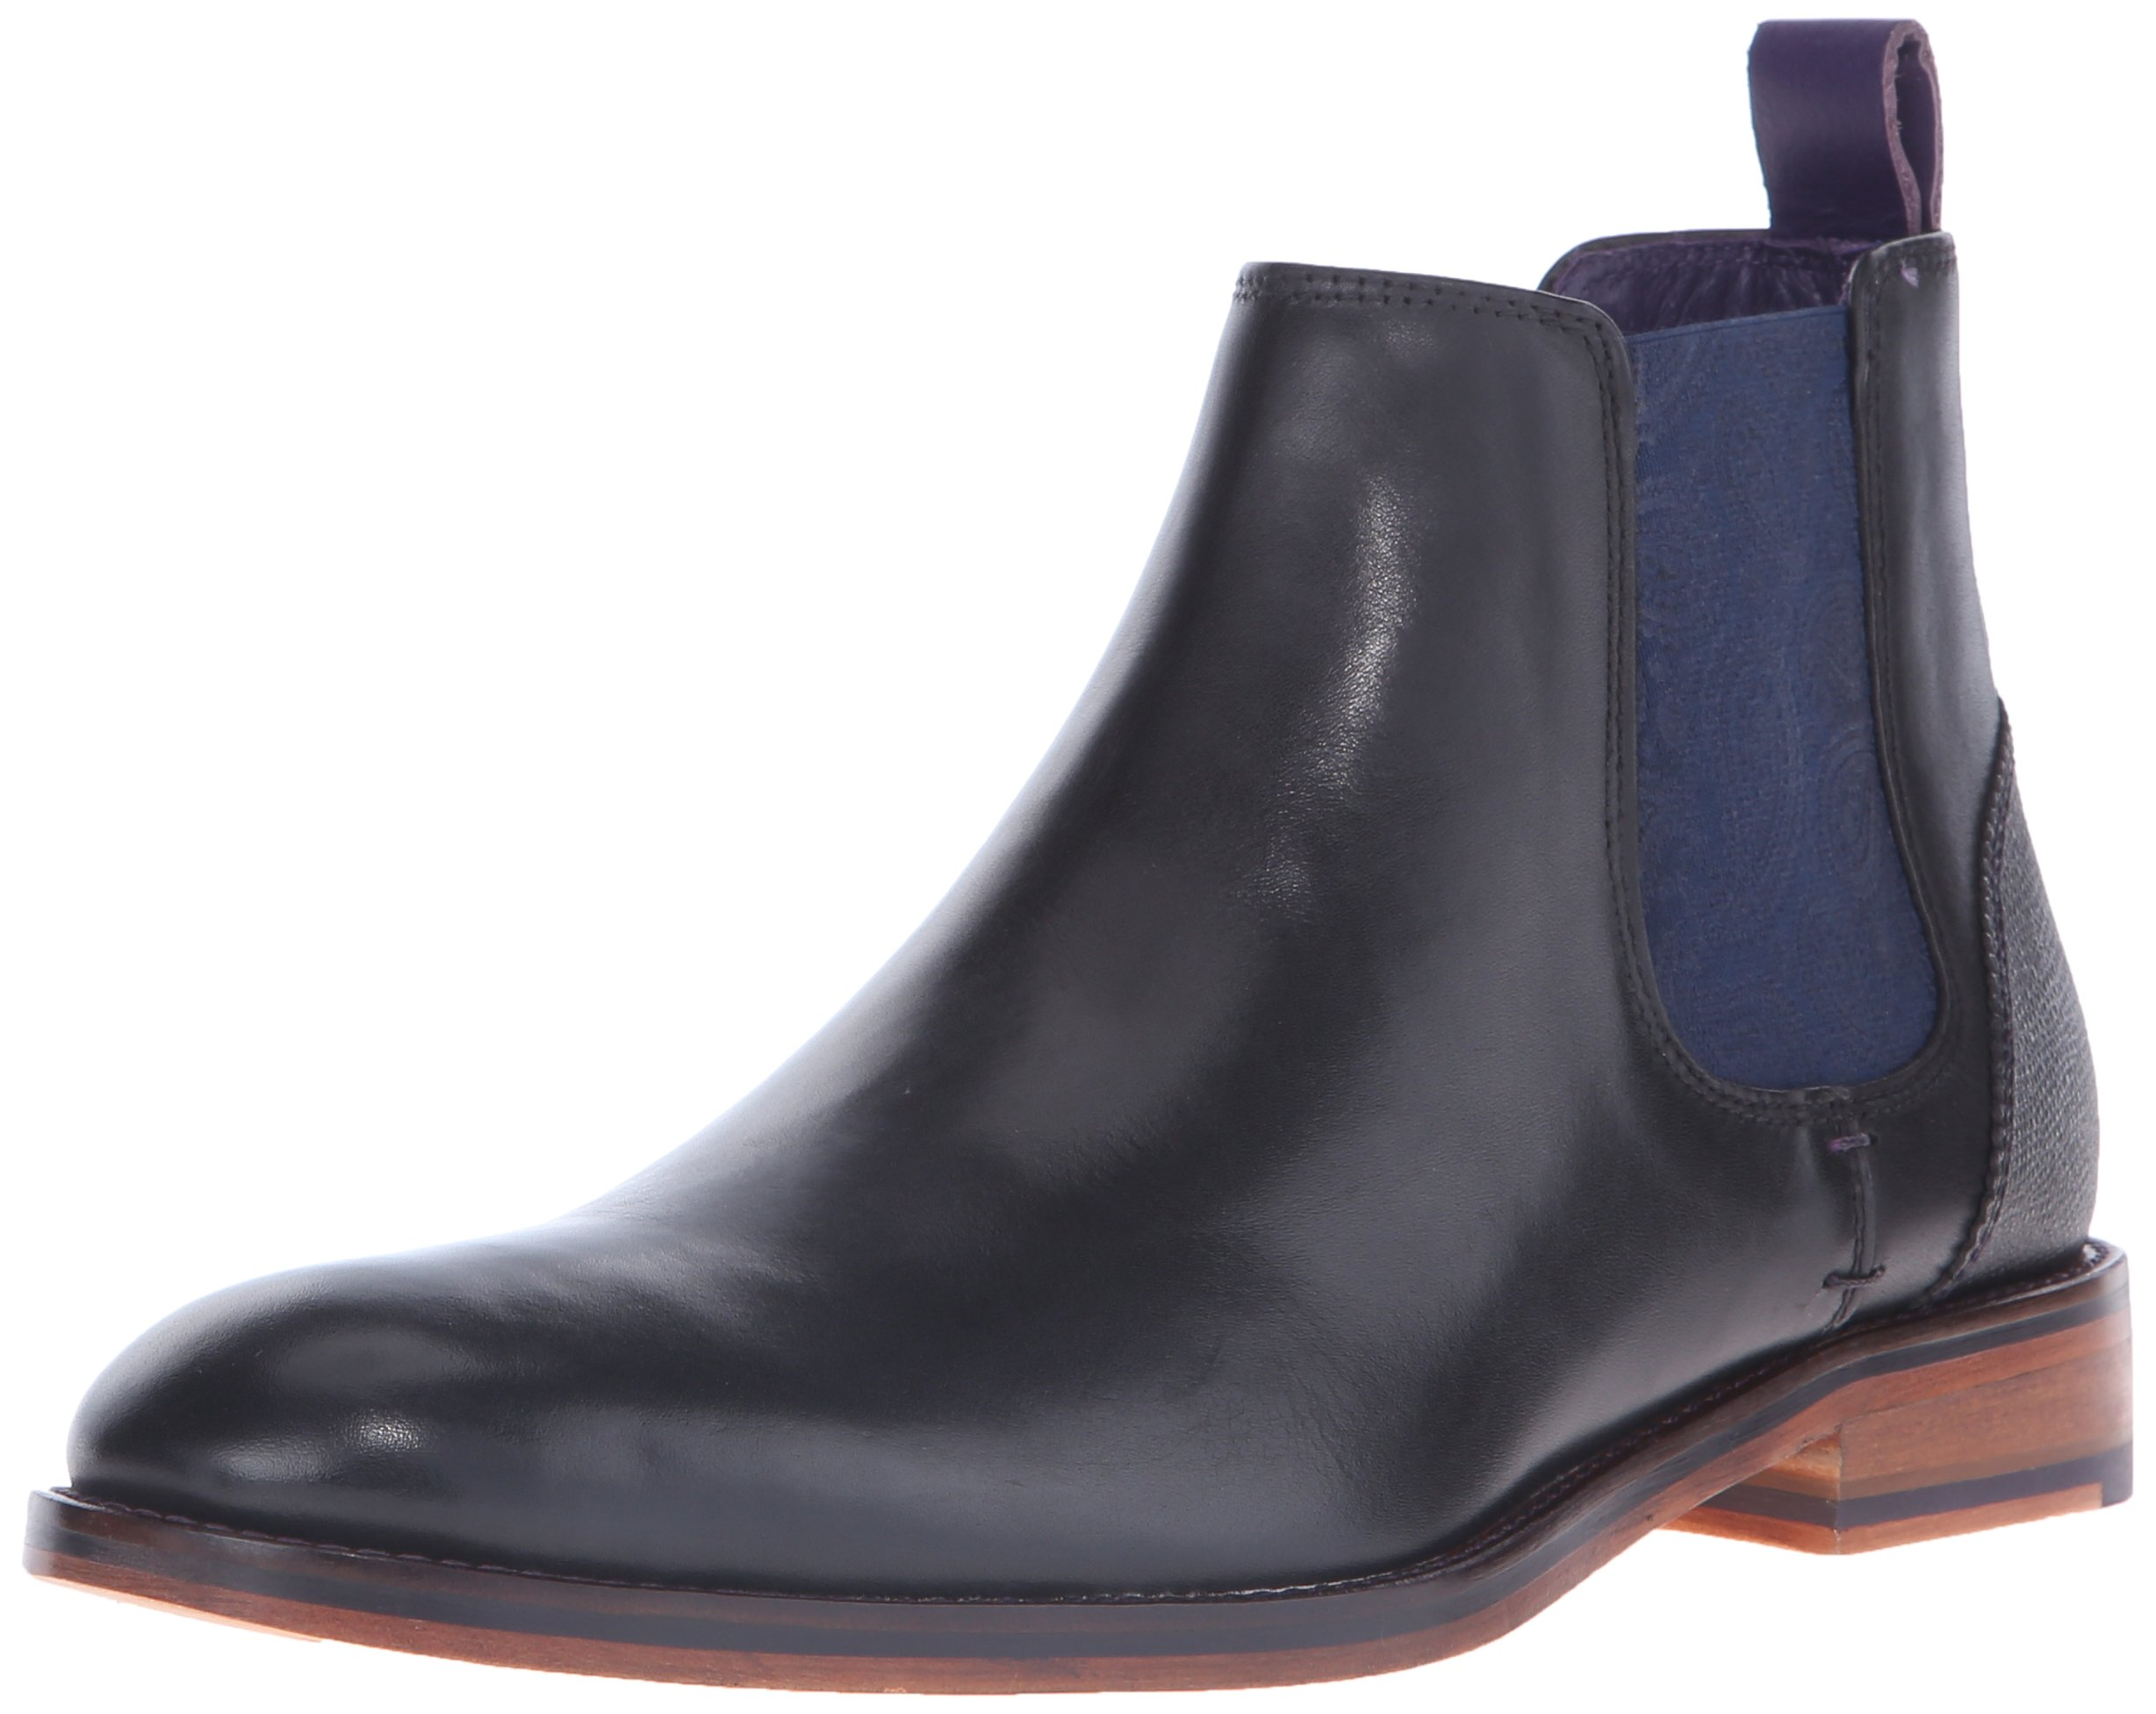 Ted Baker Men's 4 Camroon 4 Chelsea Boot, Black, 16 M US by Ted Baker